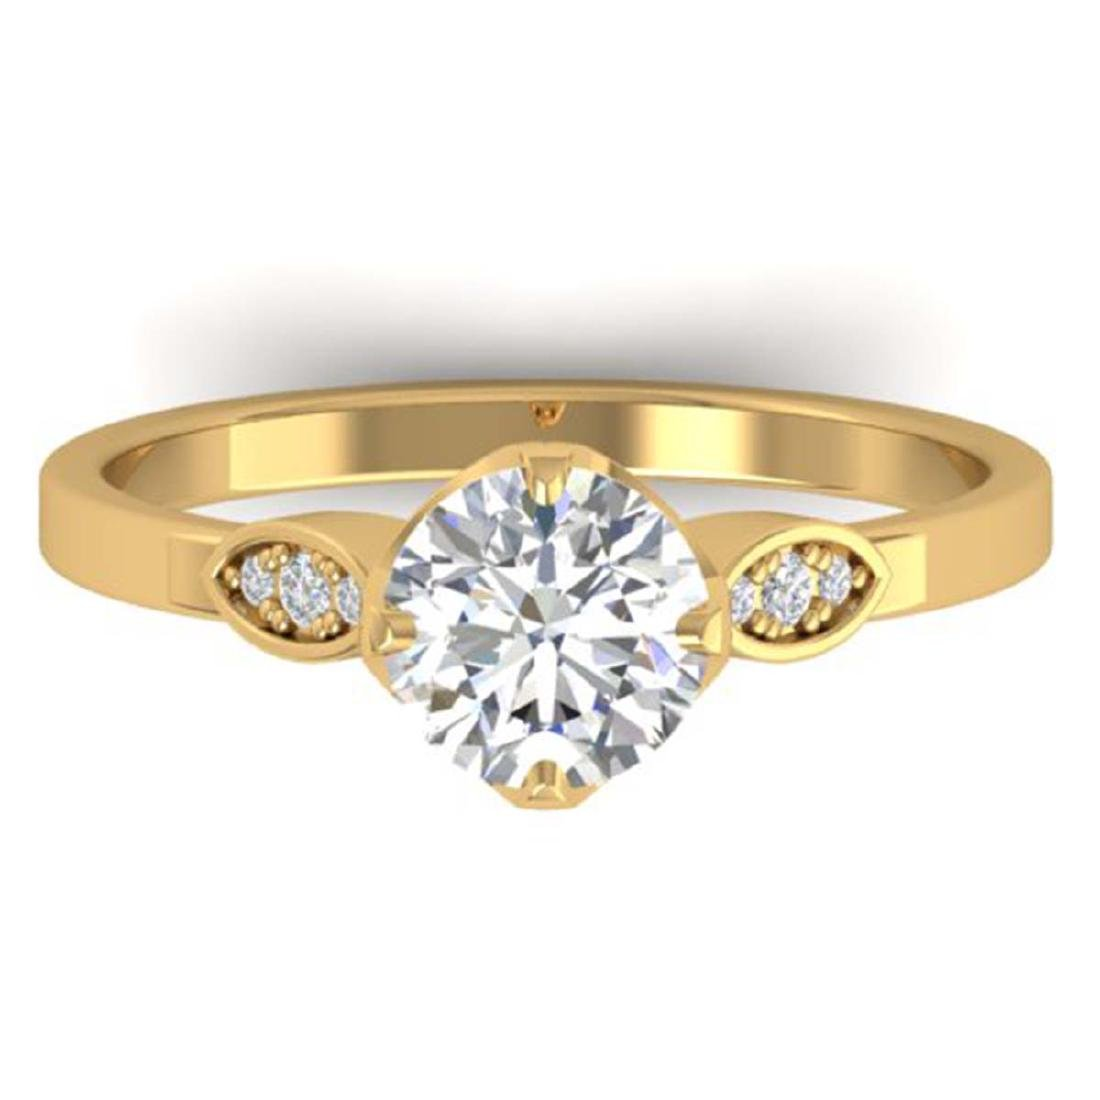 1.05 CTW Certified VS/SI Diamond Solitaire Art Deco